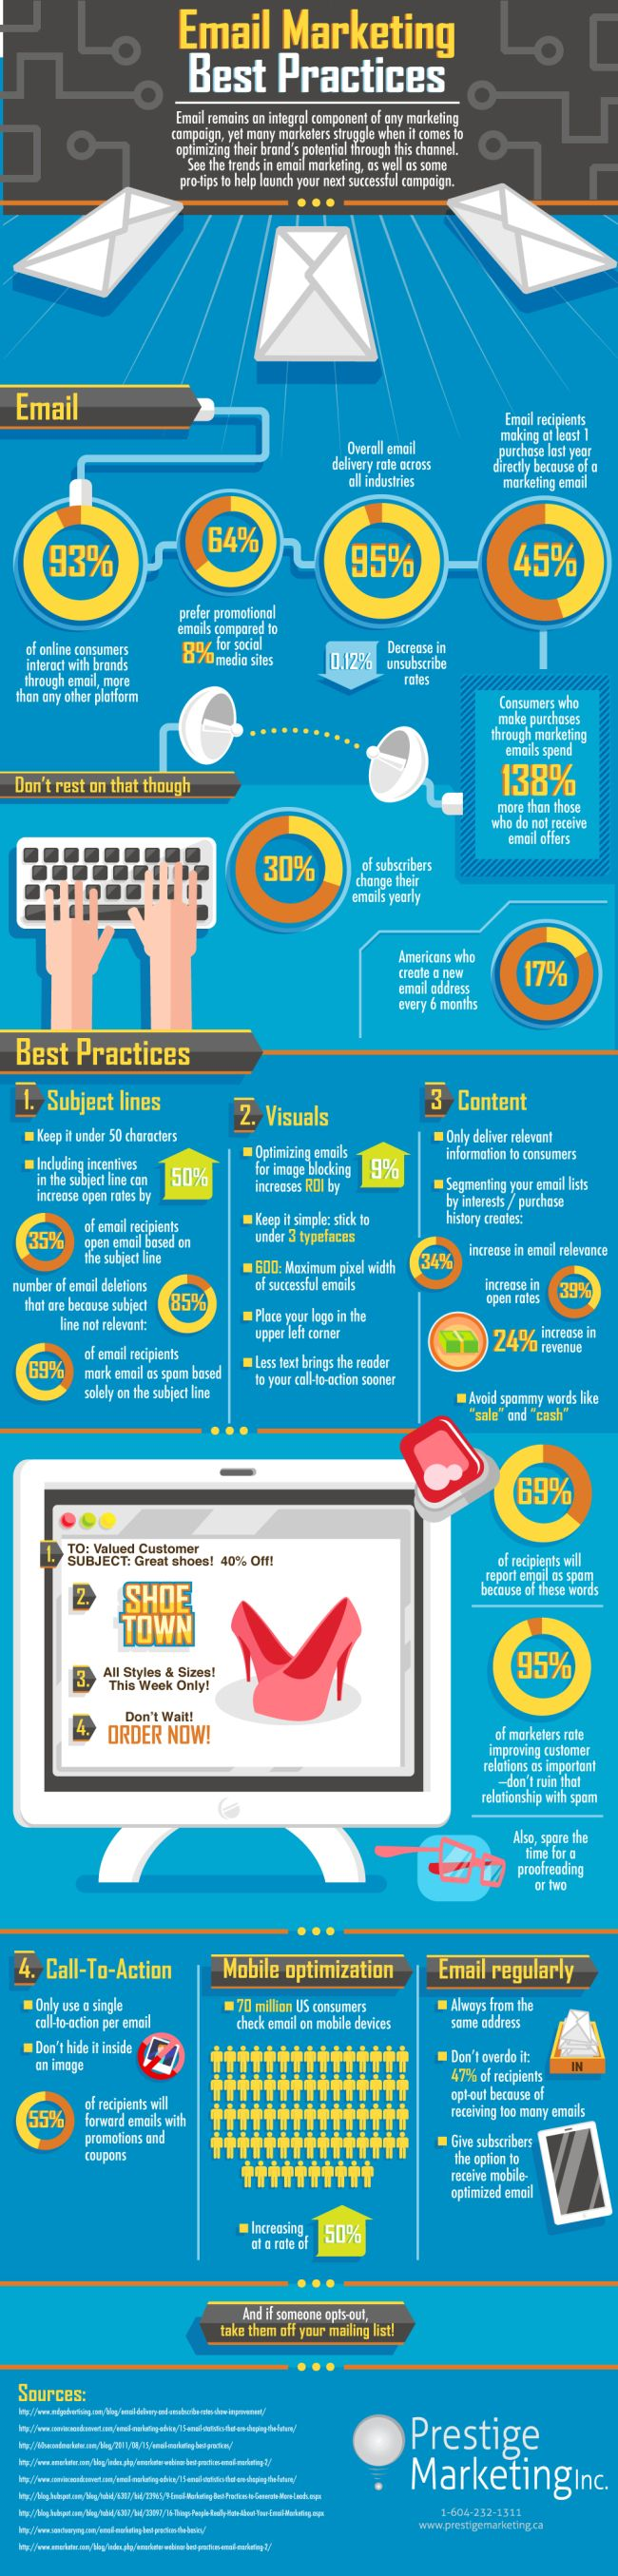 4 Tipps für Dein E-Mail Marketing | 4 top email marketing tips to increase your conversions. For more social media marketing inspiration visit www.socialmediabusinessacademy.com Email marketing infographic